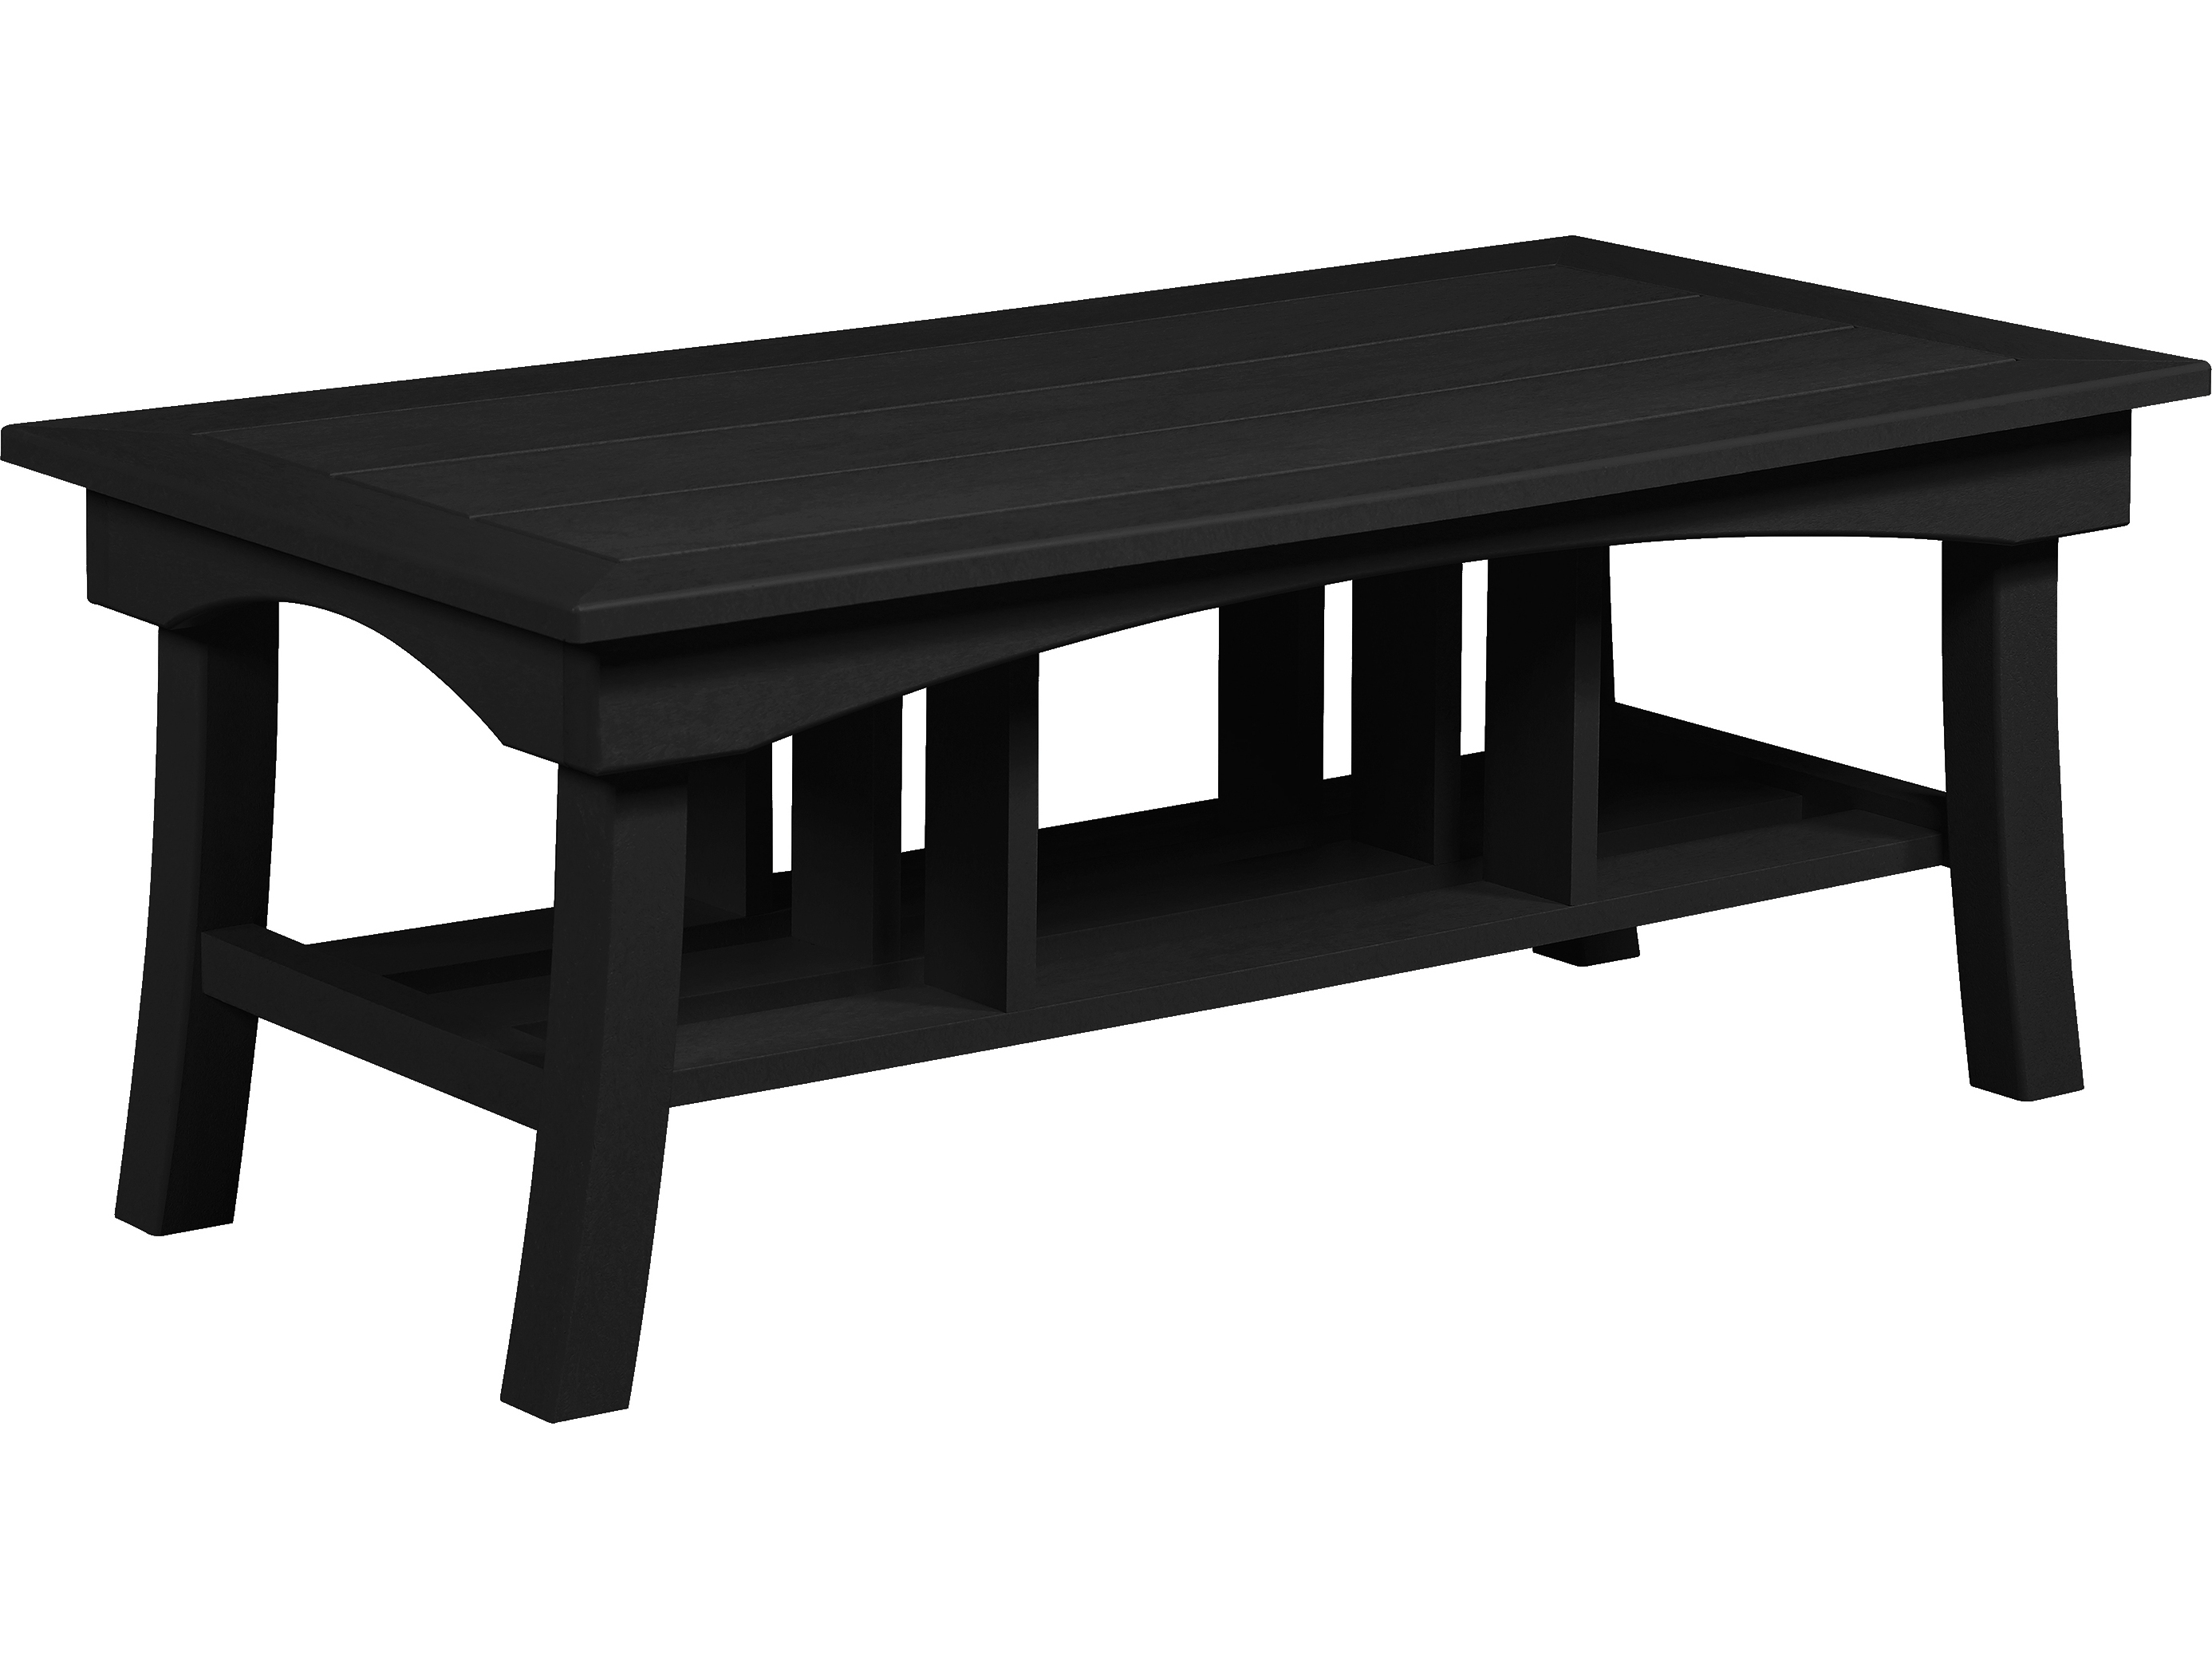 C R Plastic Bay Breeze Deep Seating 49 Rectangular Coffee Table Dst167